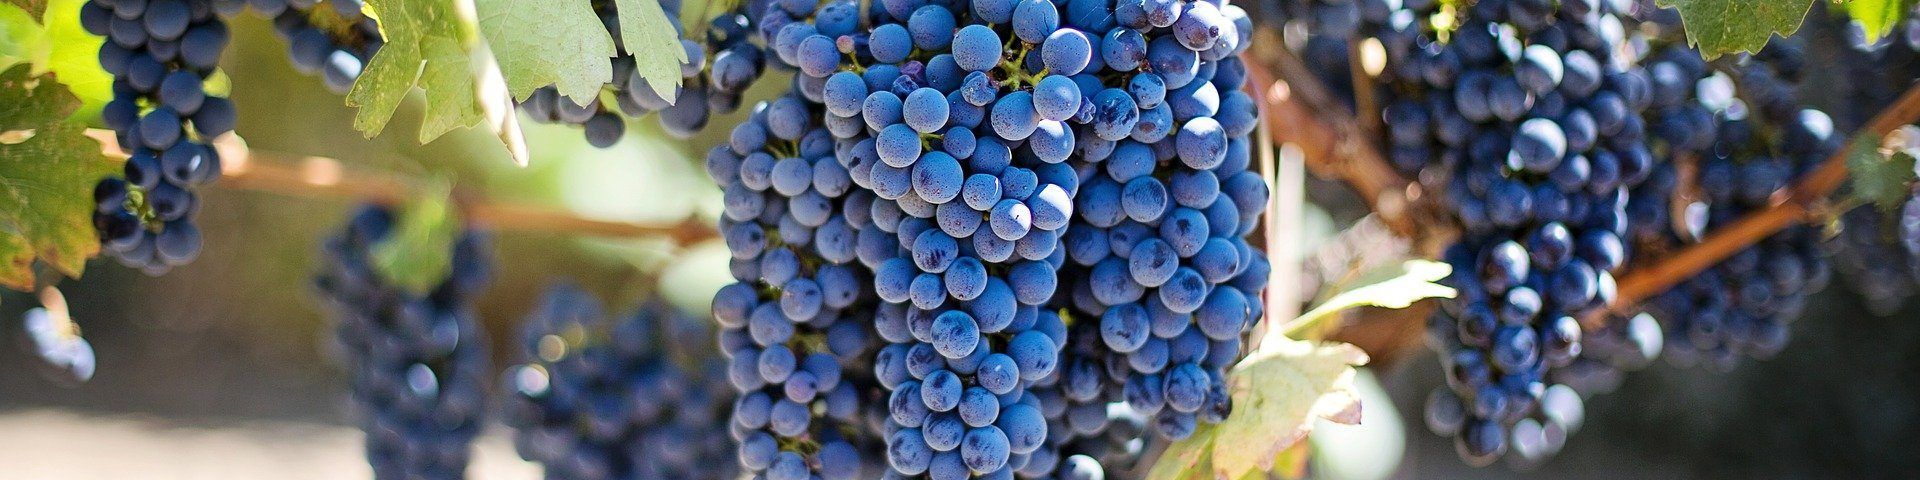 grapes 553464 1920 1920x480 - [Degustacja] Hot or Not